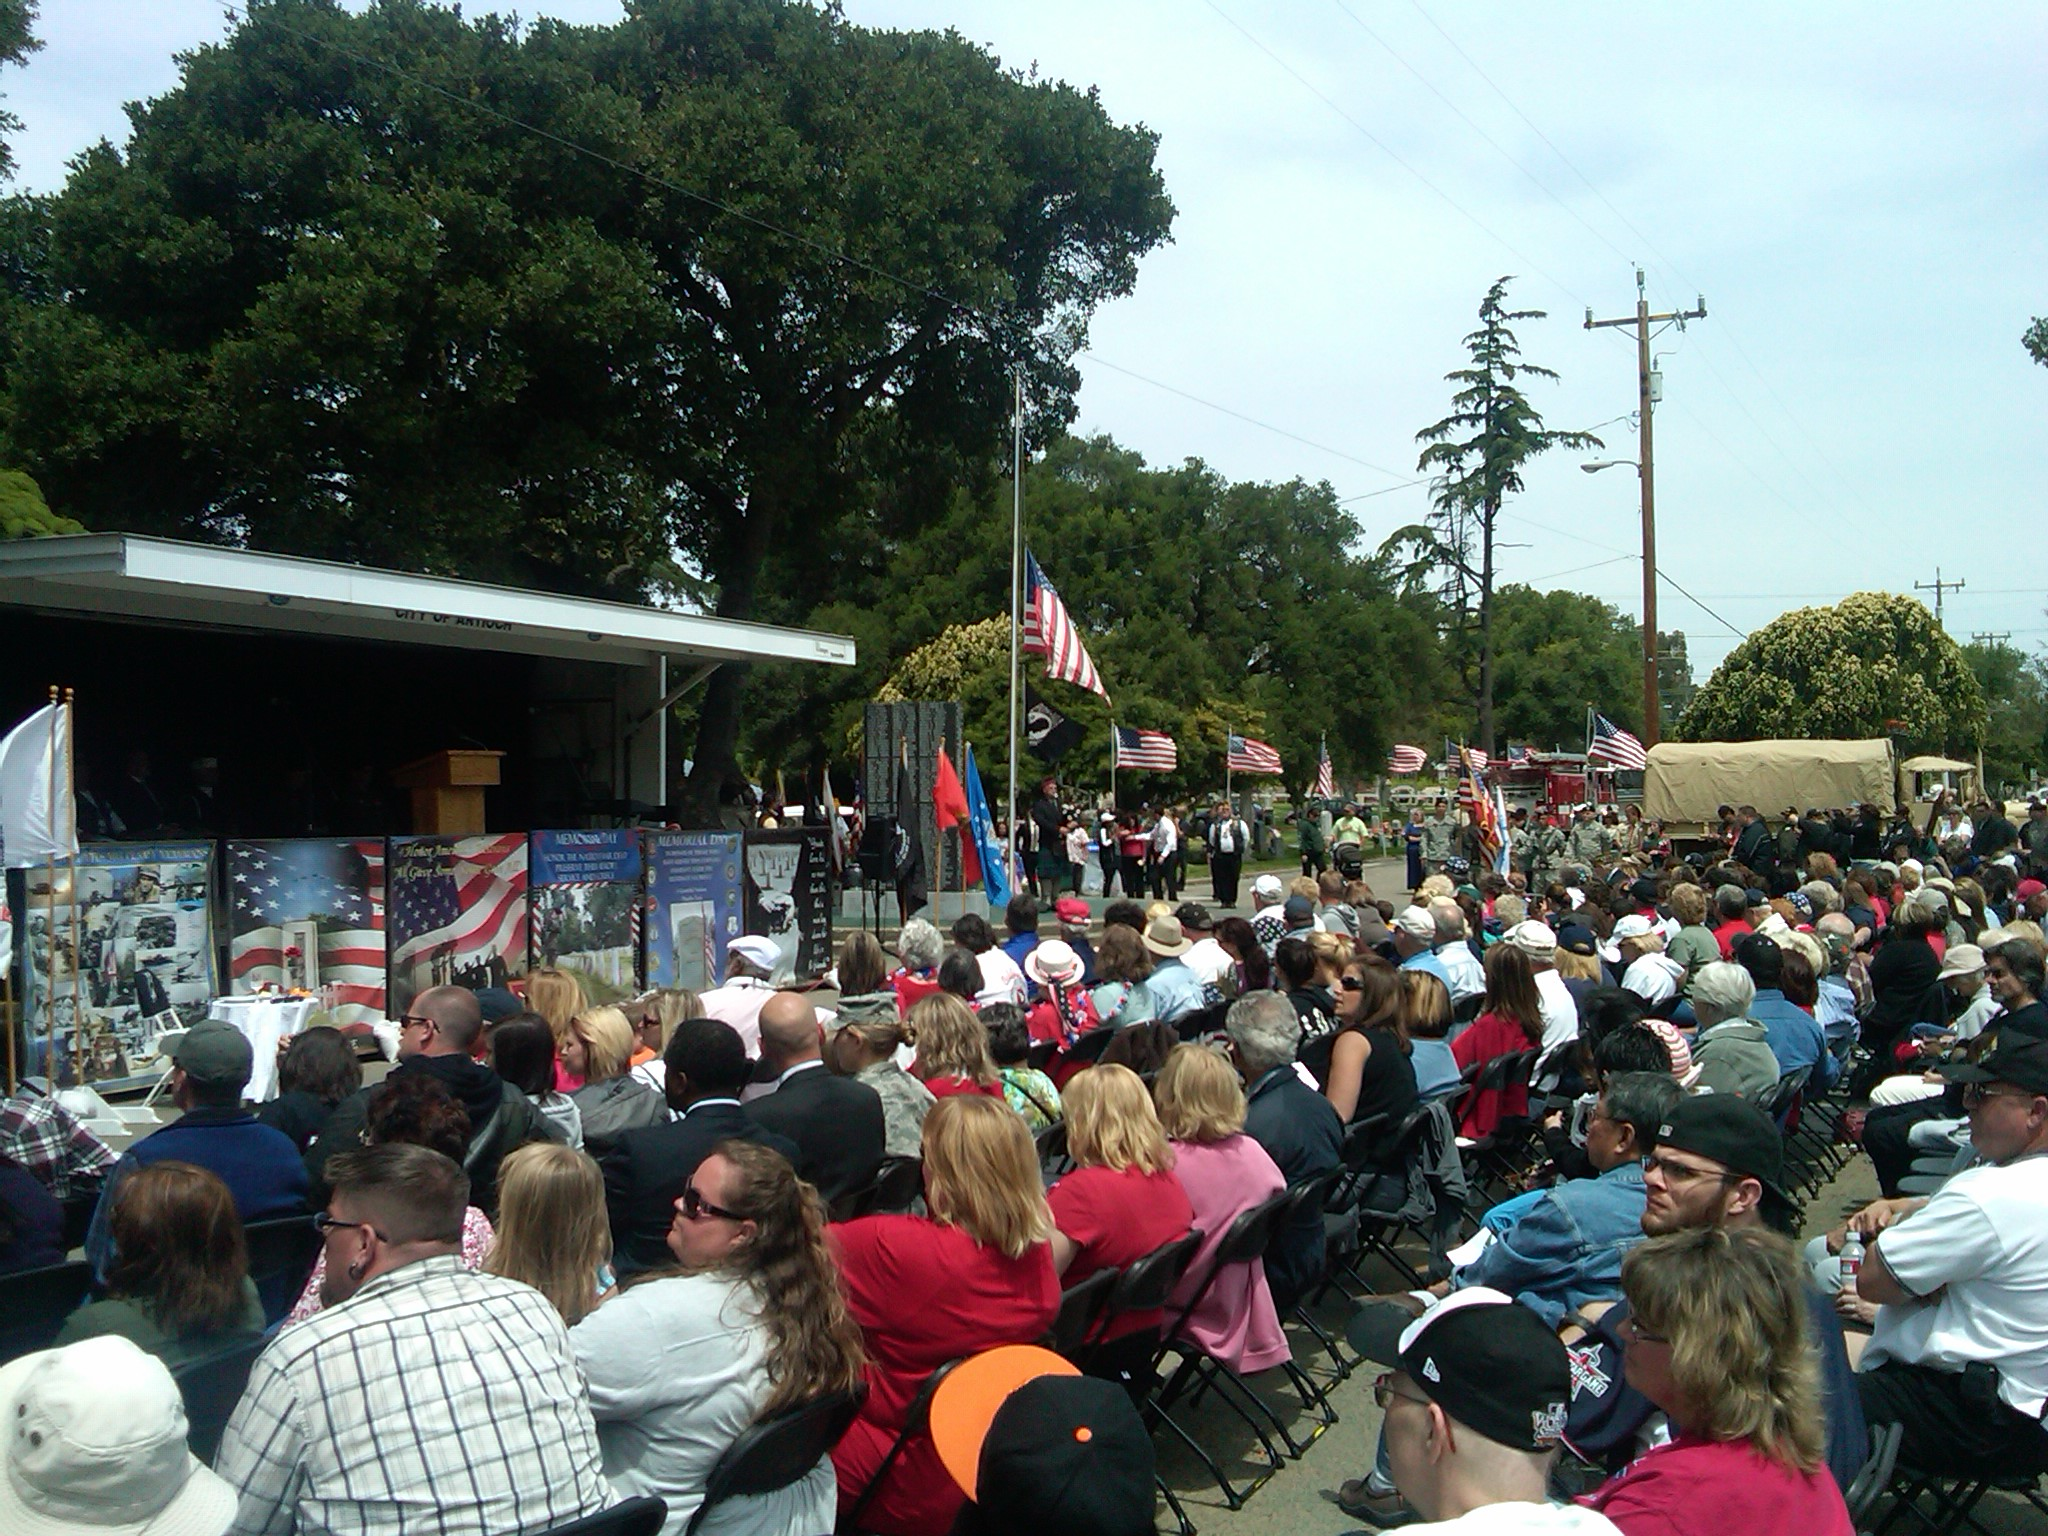 600 gather for Antiochs 2011 Memorial Day ceremonies Antioch Celebrates Memorial Day with Thunder